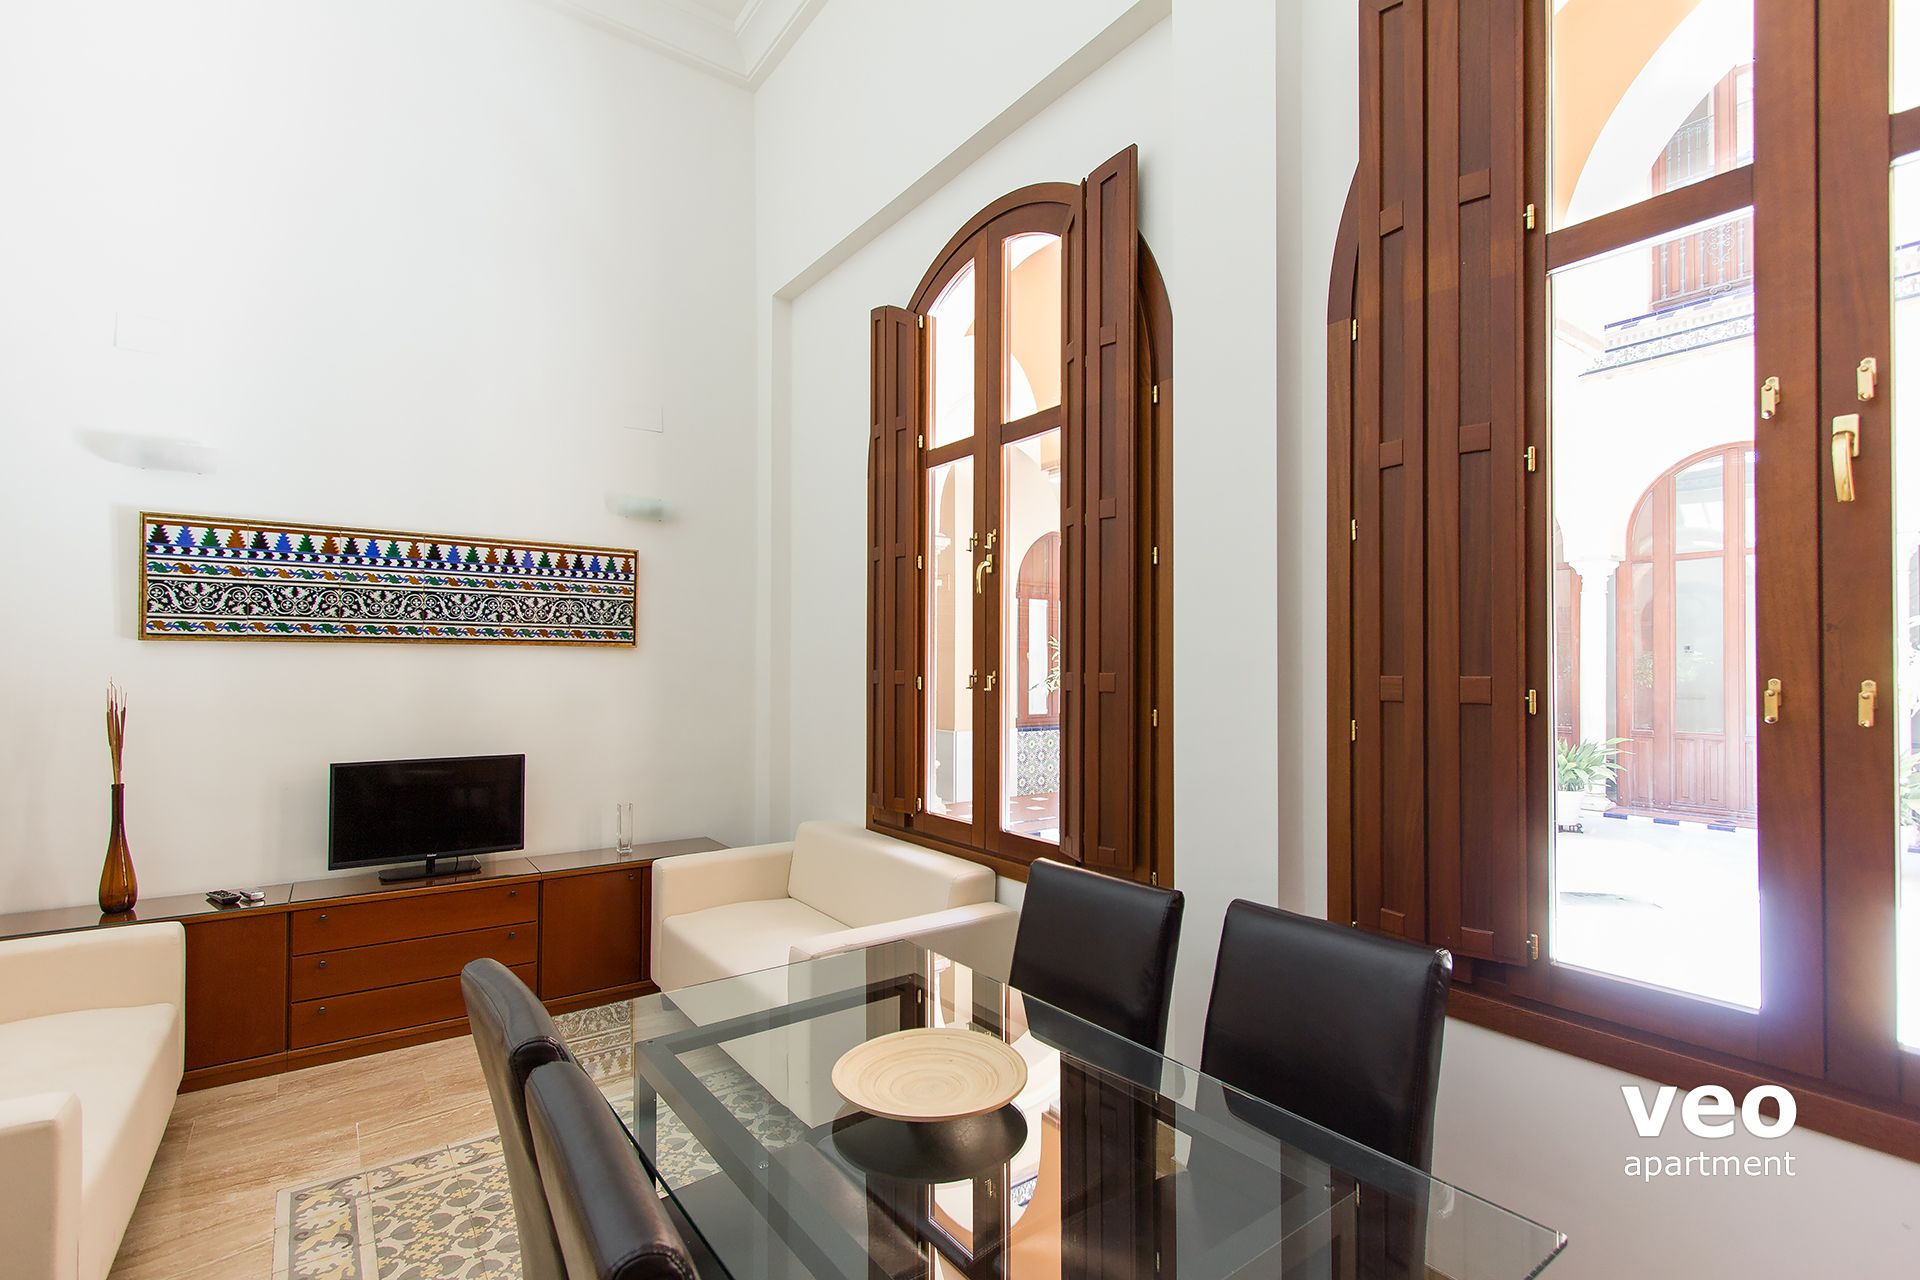 Seville Apartment This Elegant 3 Bedroom Duplex Can Accommodate Up To 5 Guests